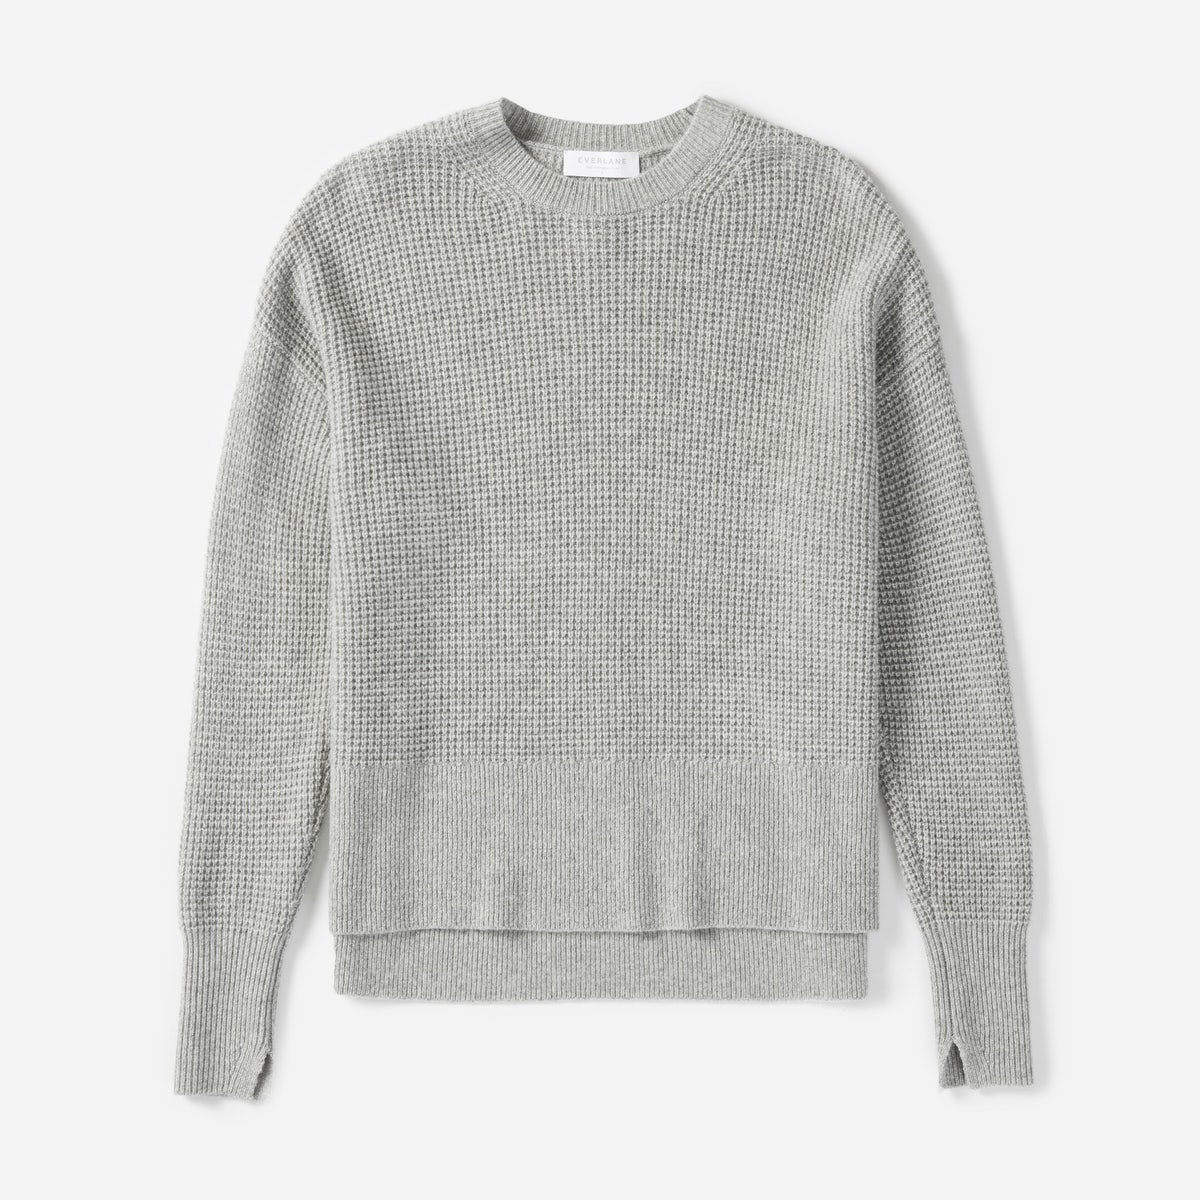 Everlane Waffle Knit Cashmere Square Crew Review